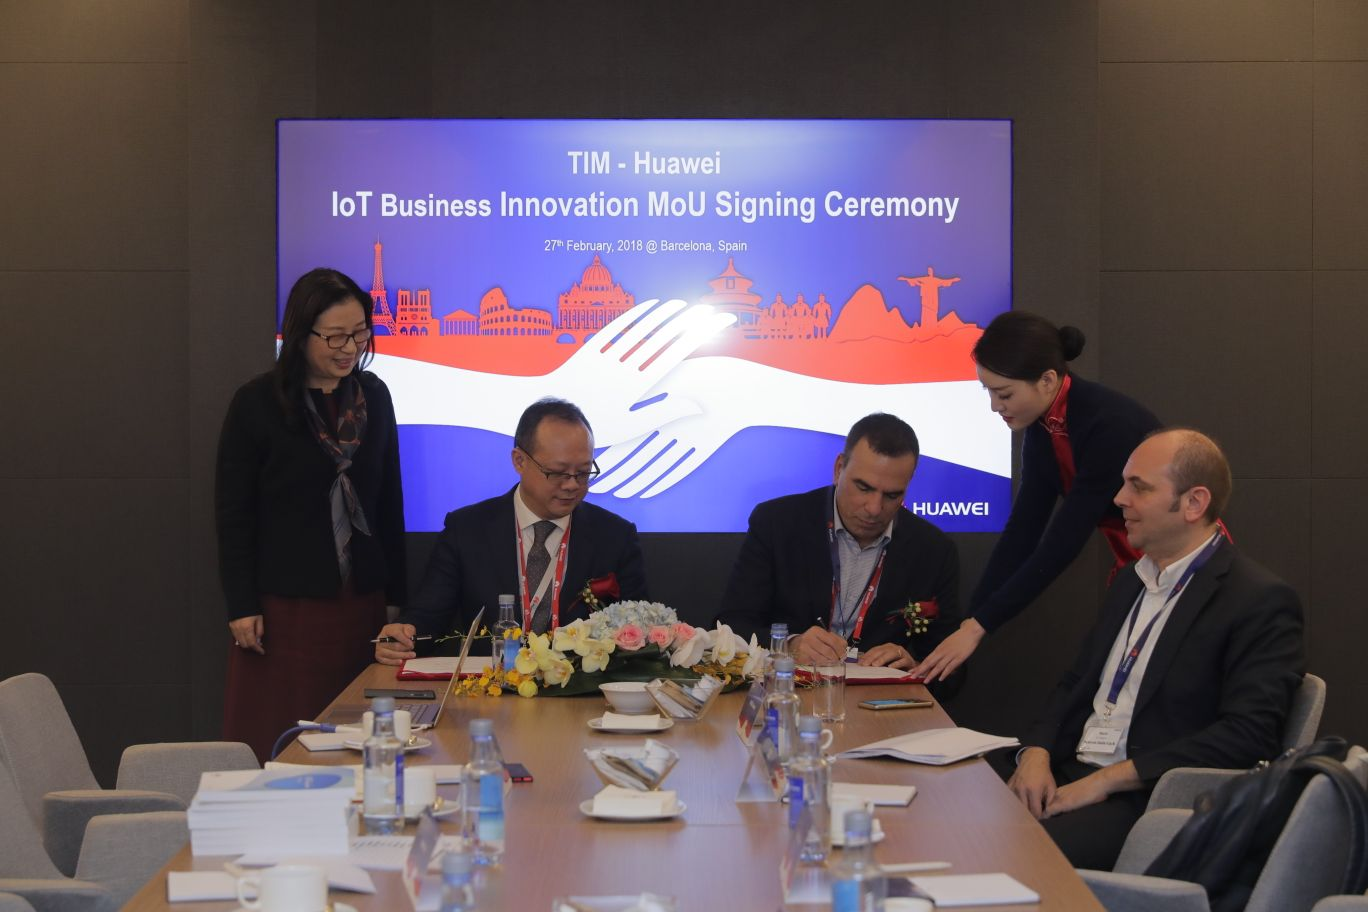 Business Innovation tim huawei